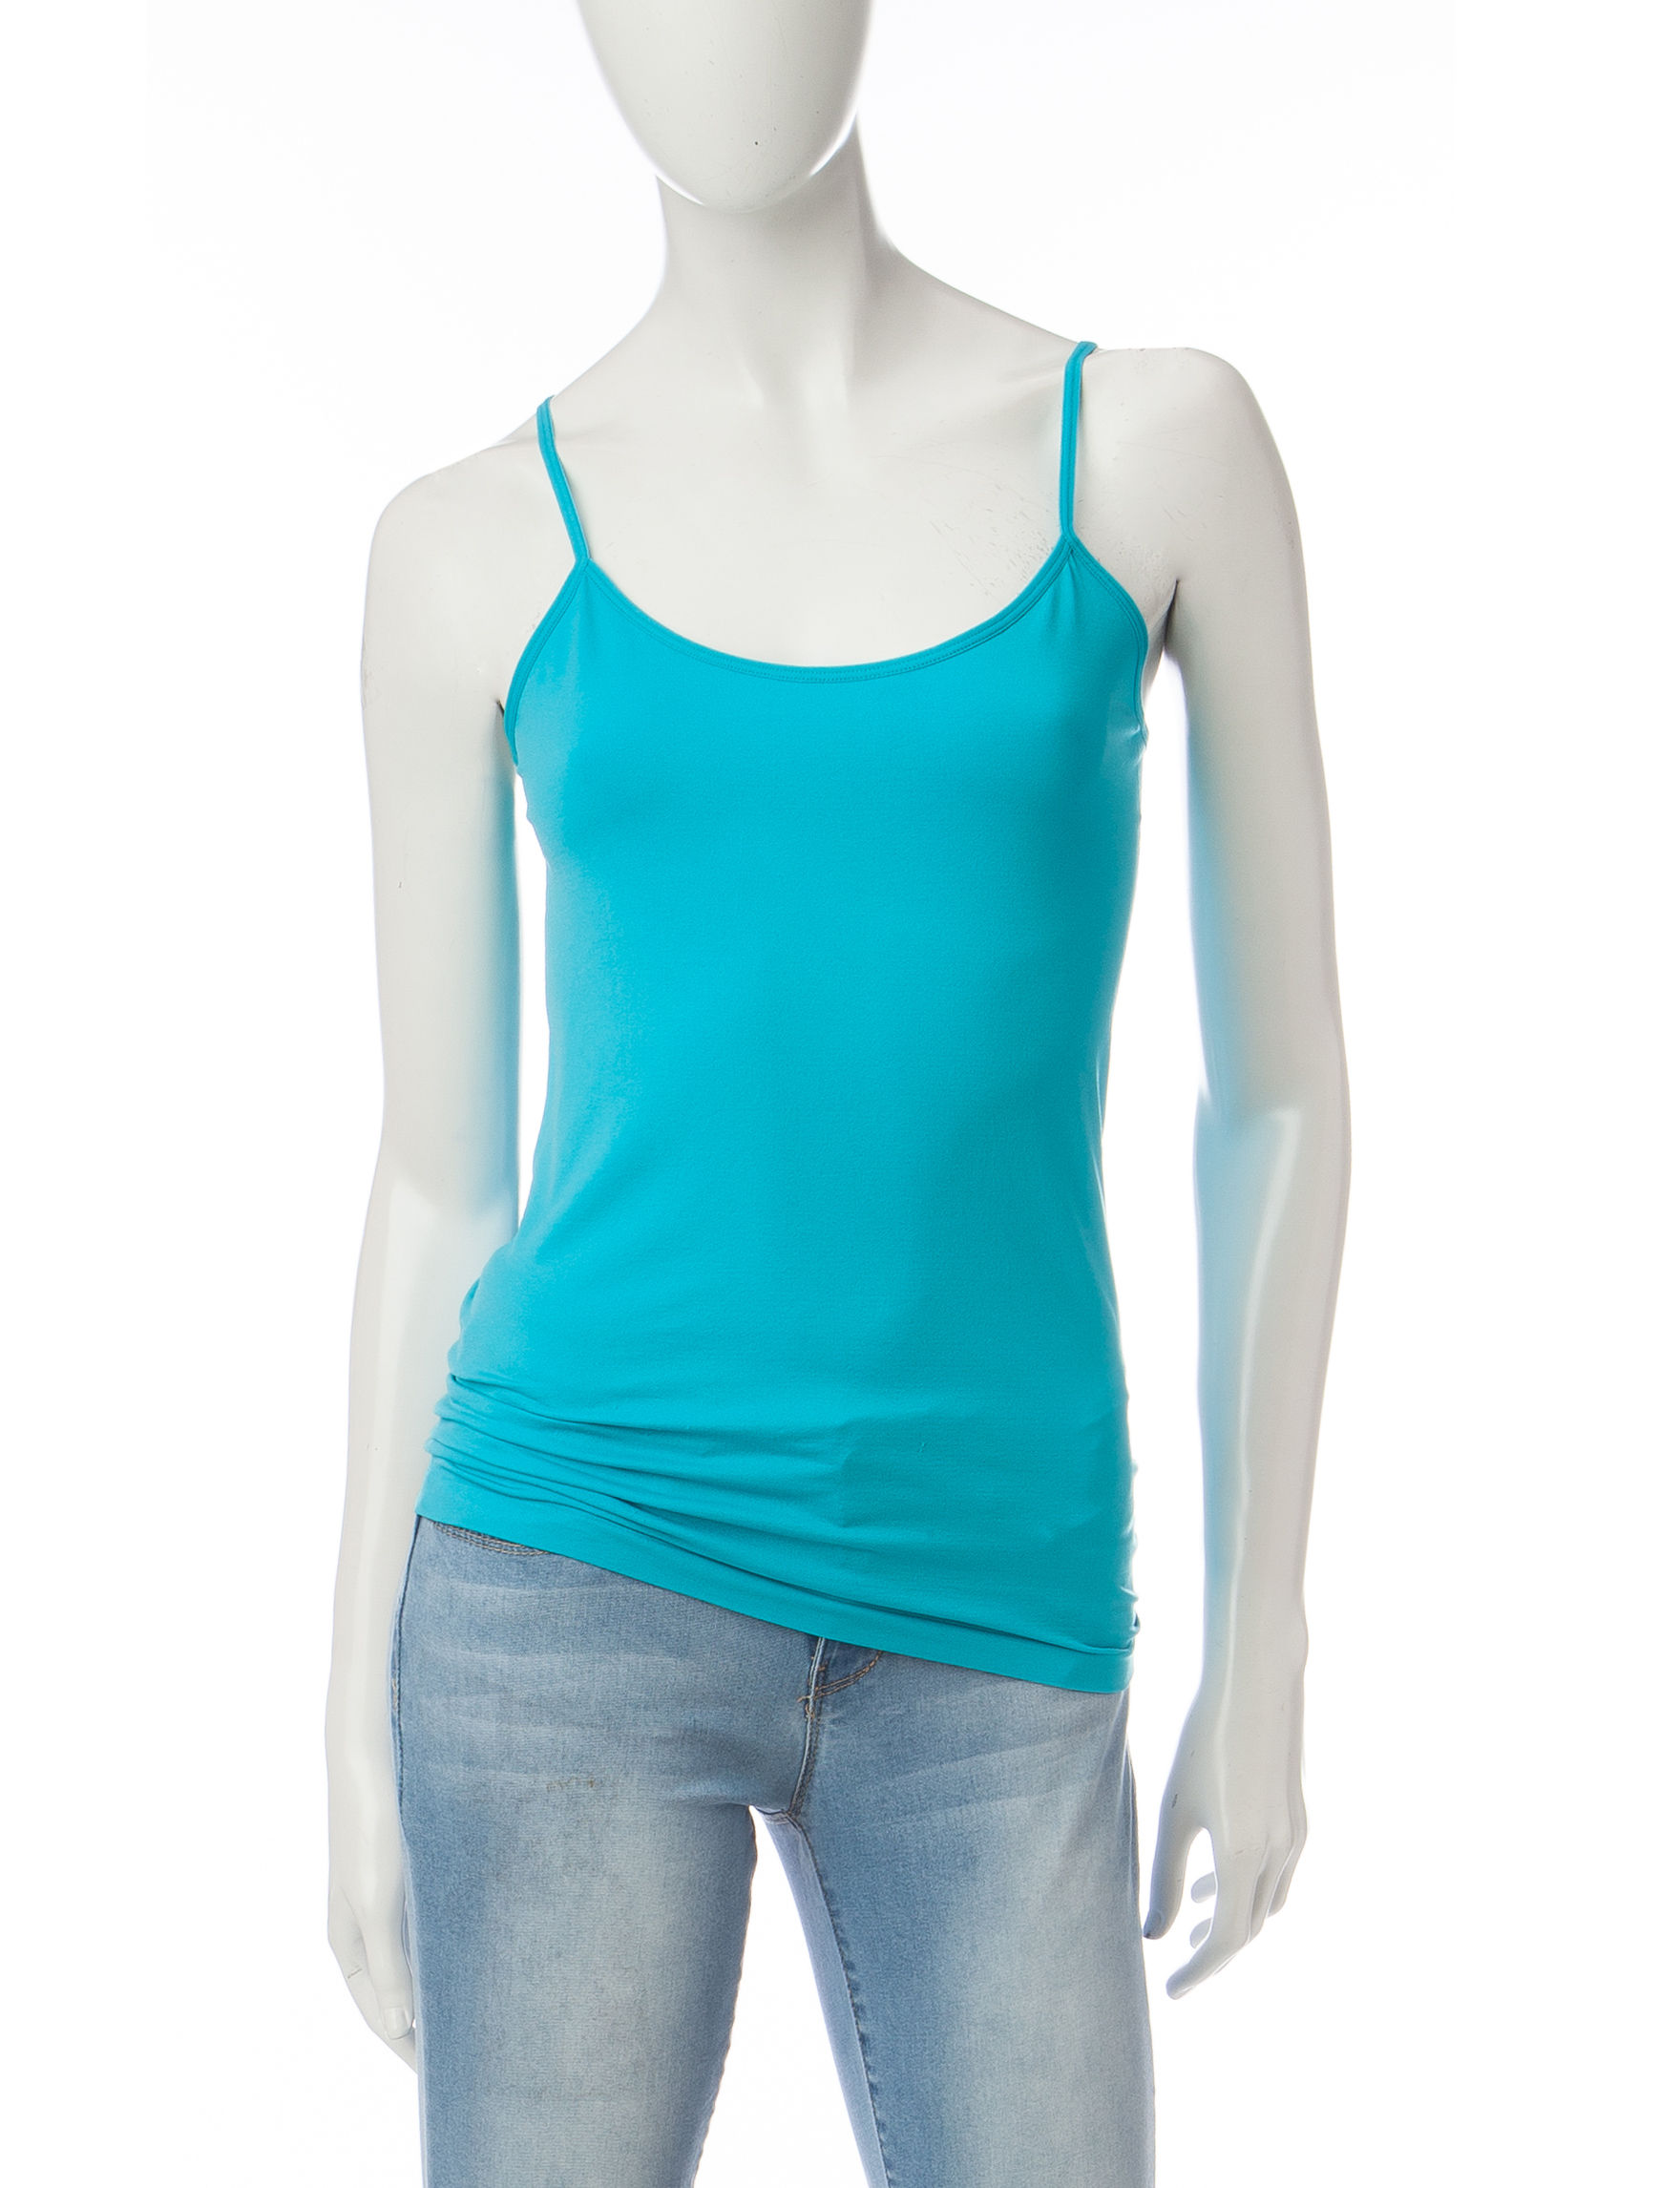 Wishful Park Medium Blue Camisoles & Tanks